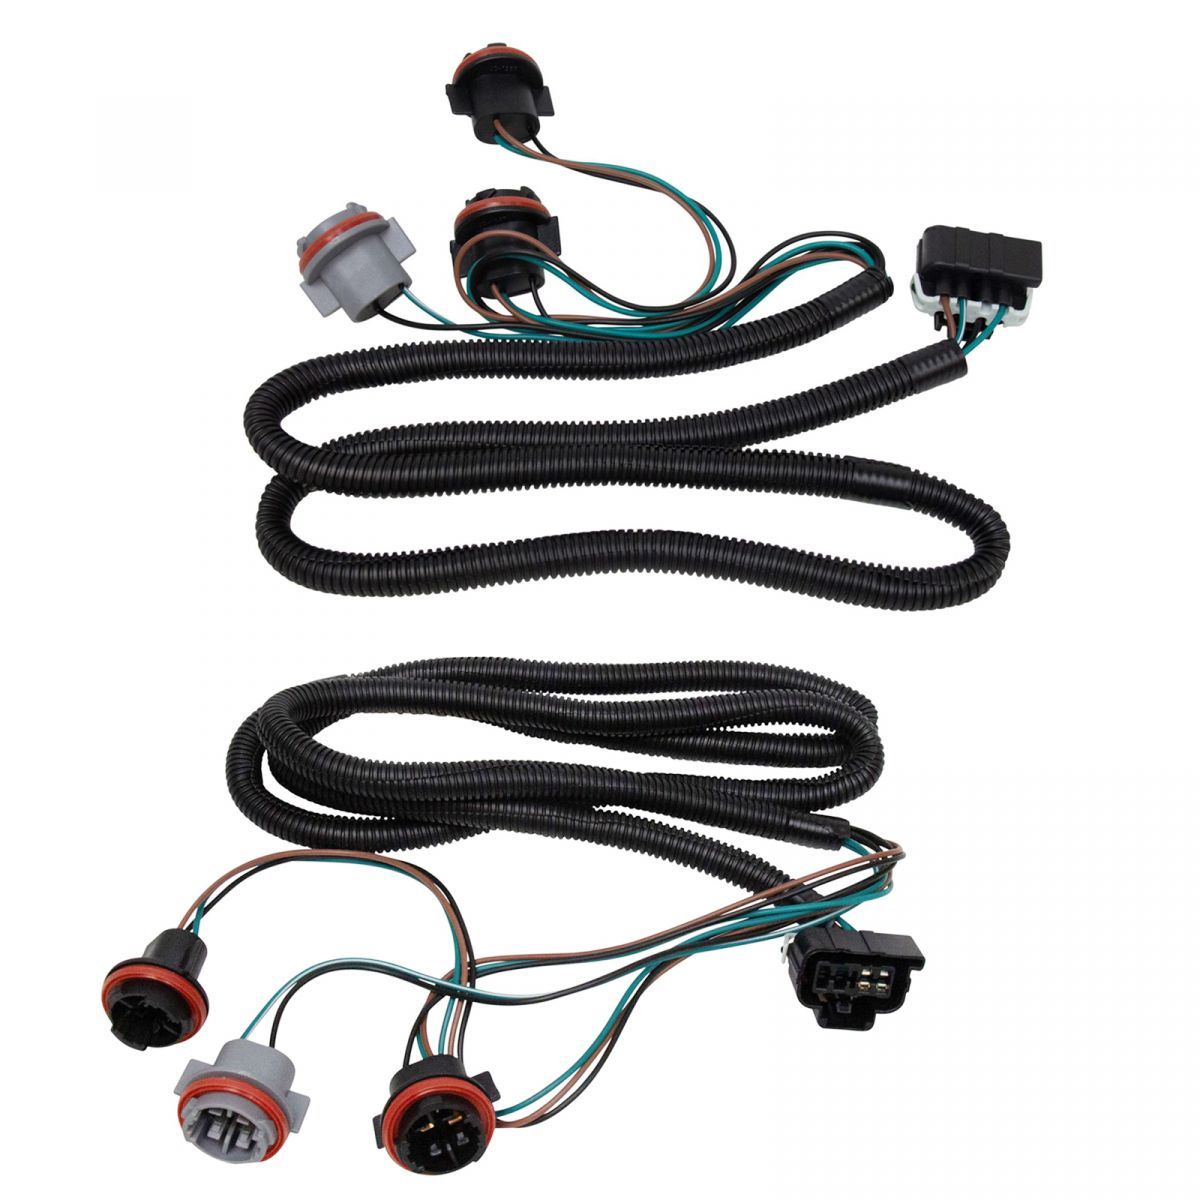 silverado wiring harness ebay tail light lamp wiring harness lh rh pair for chevy silverado  tail light lamp wiring harness lh rh